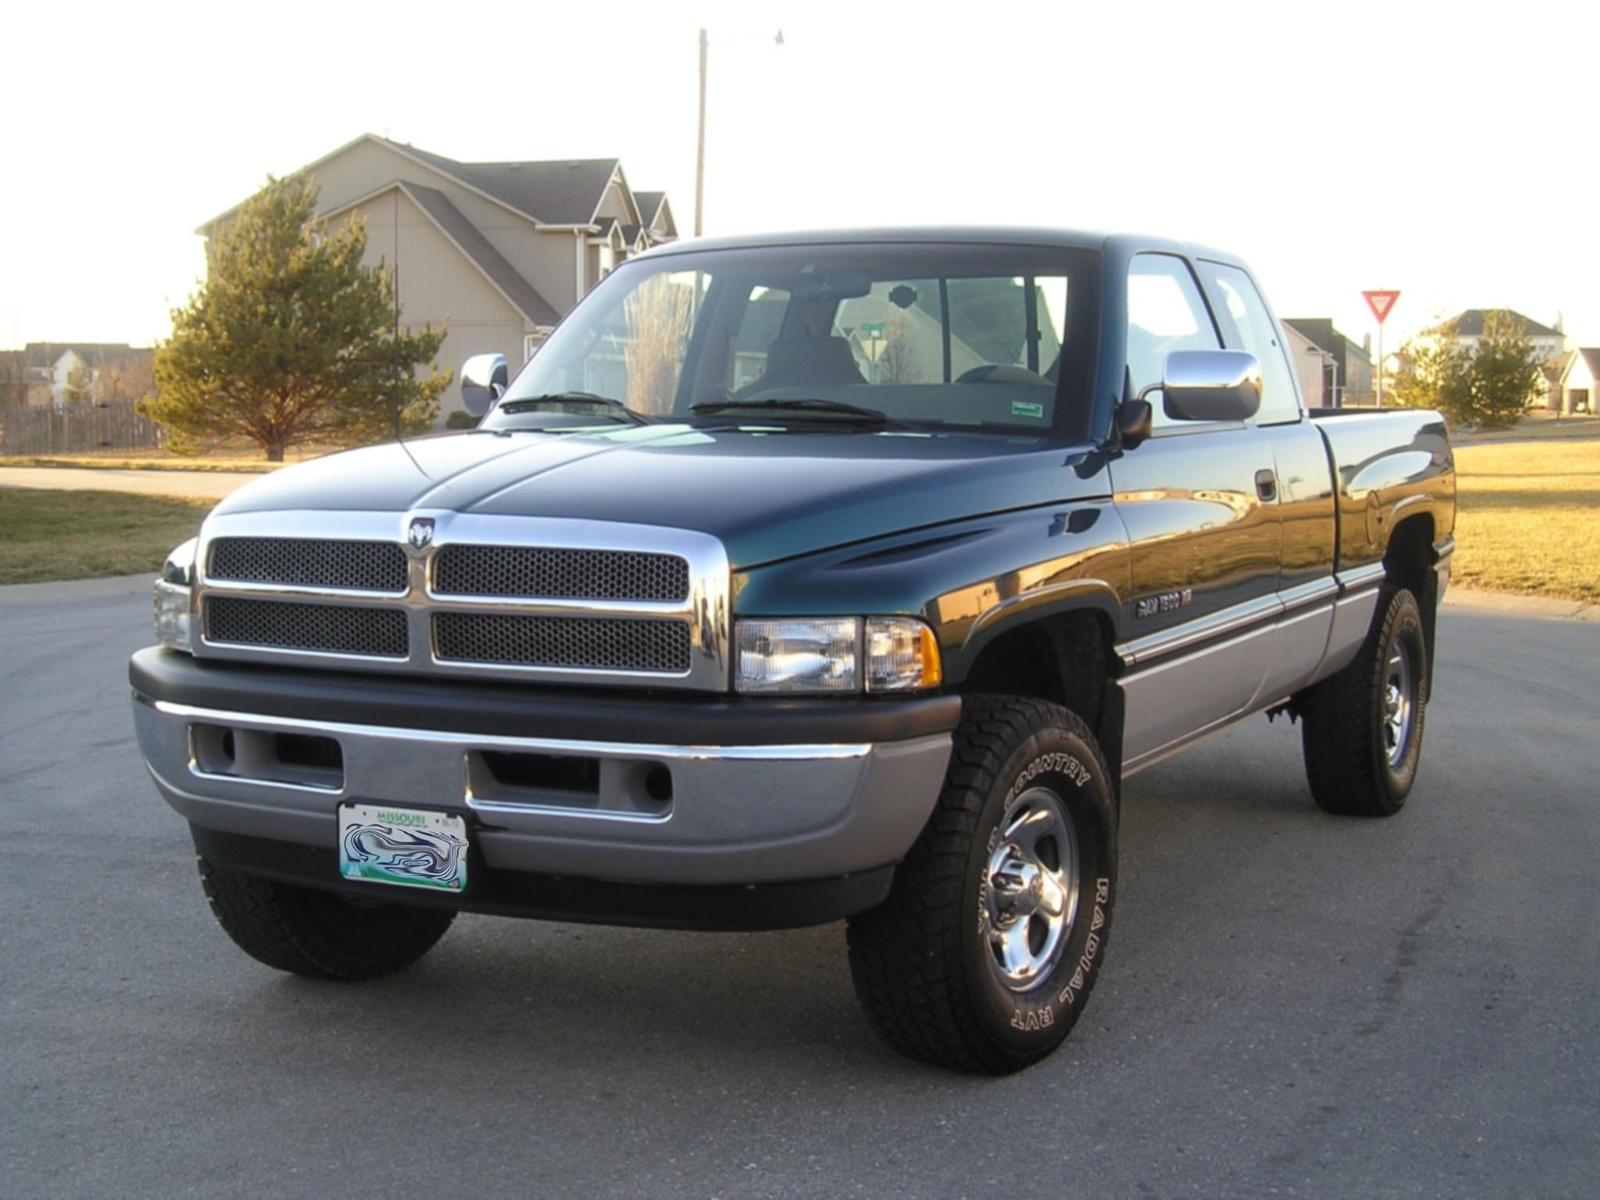 1995 dodge ram pickup 1500 information and photos zombiedrive. Black Bedroom Furniture Sets. Home Design Ideas